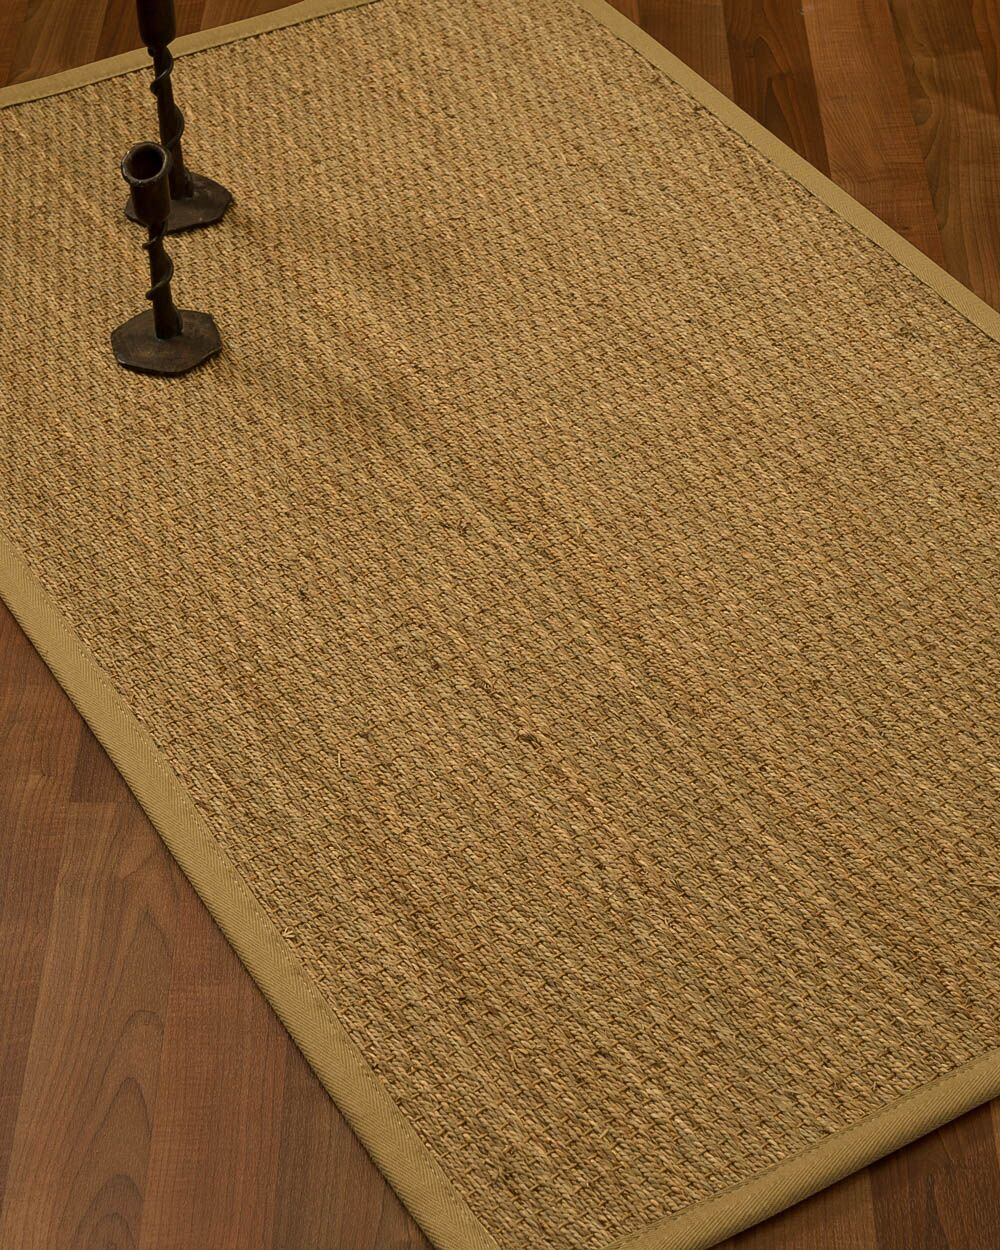 Vanmatre Border Hand-Woven Beige/Sage Area Rug Rug Size: Rectangle 4' x 6', Rug Pad Included: Yes